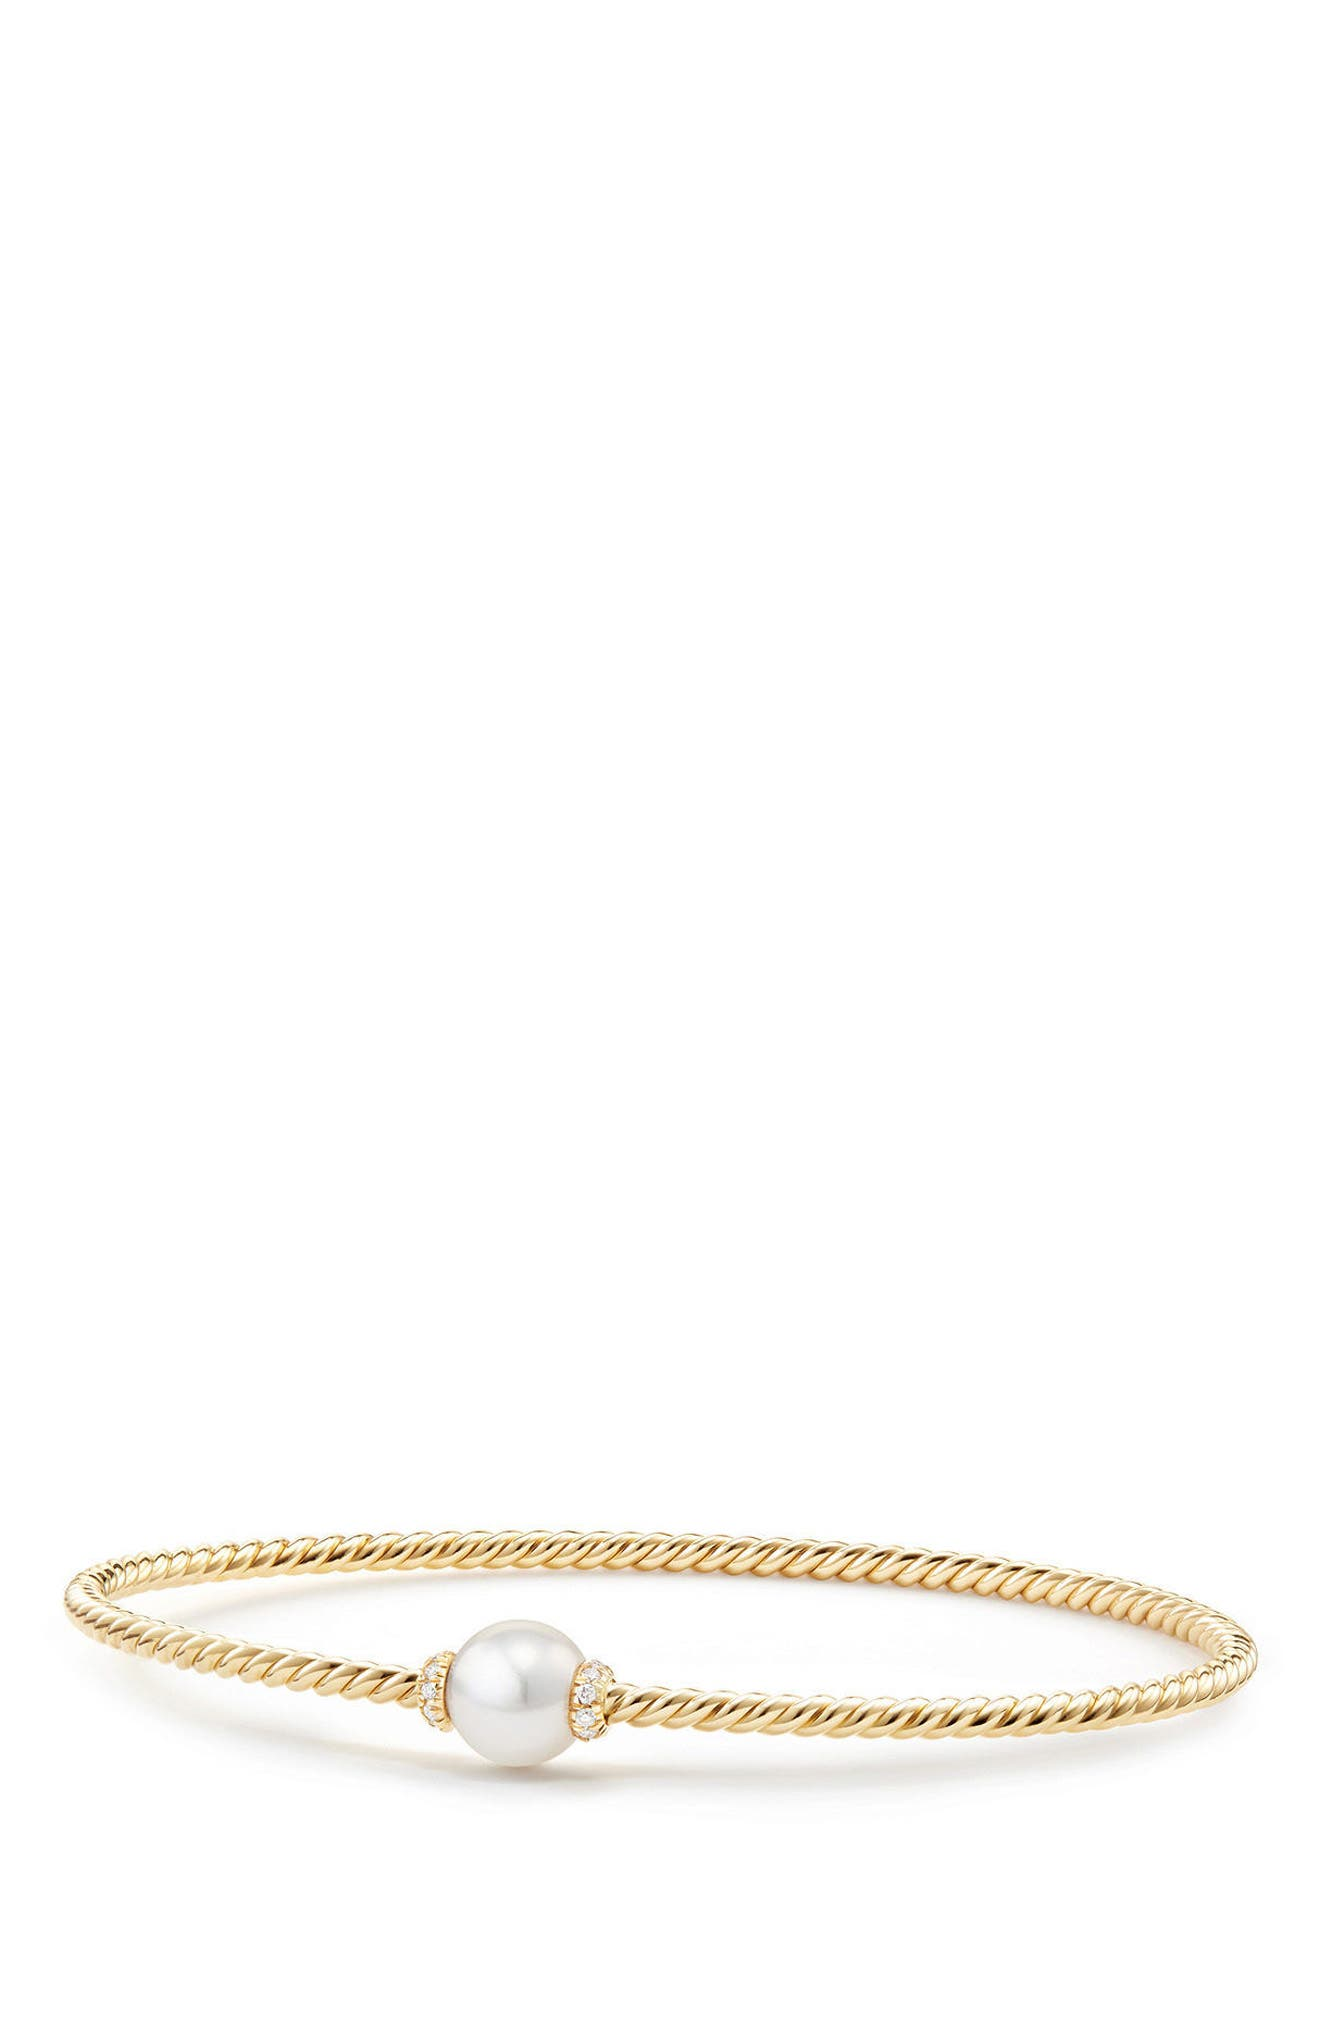 Solari Station Bracelet with Cultured Pearl & Diamonds in 18K Gold,                         Main,                         color, Yellow Gold/ Diamond/ Pearl